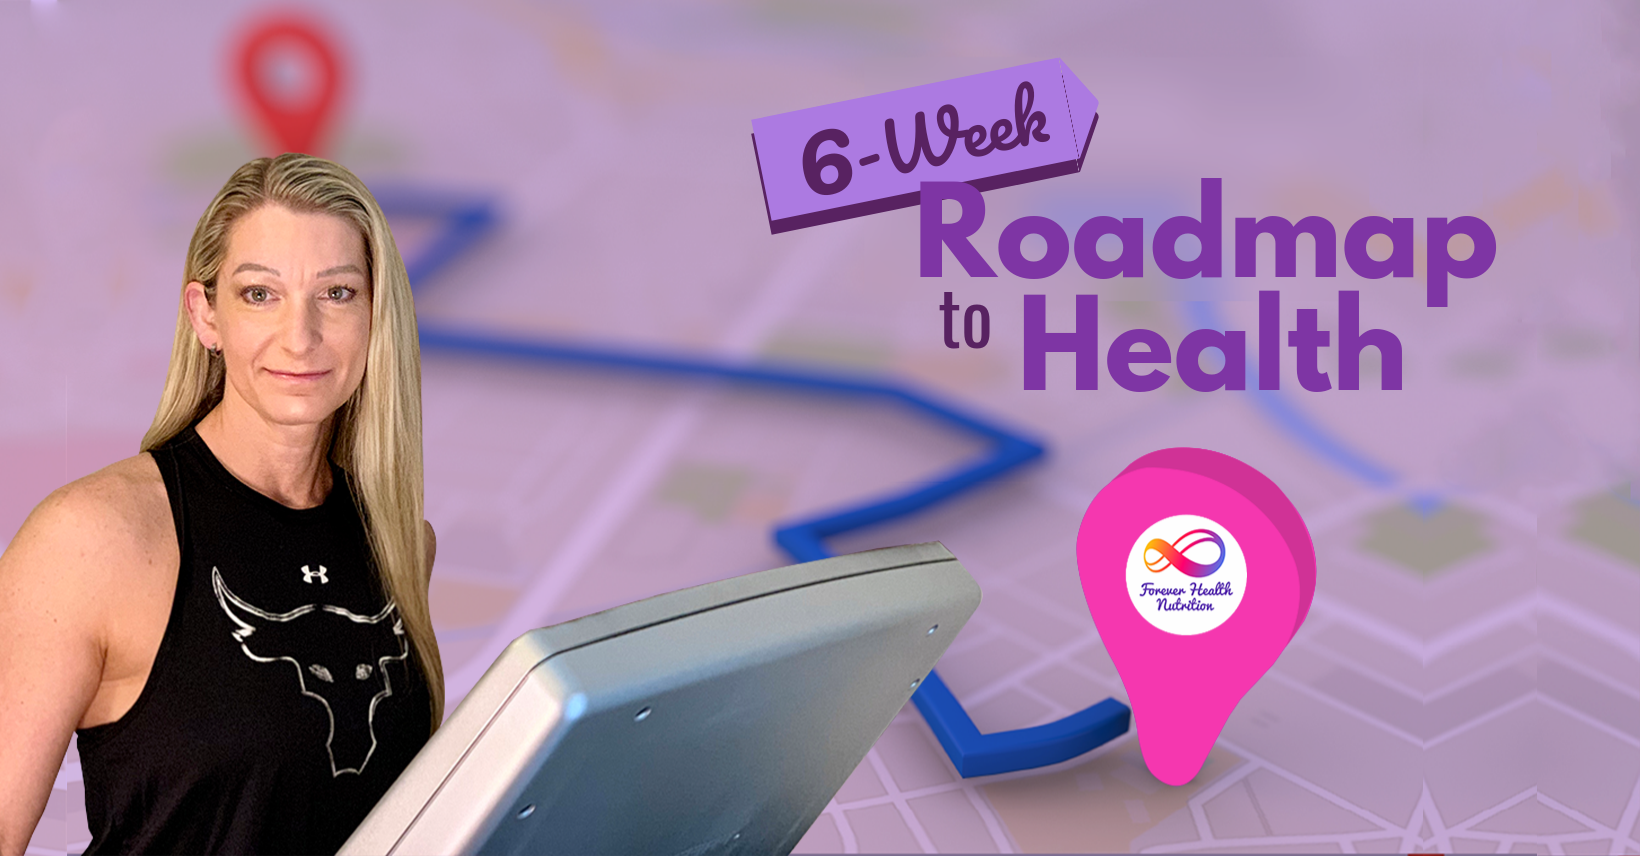 Roadmap to Health - Forever Health Nutrition